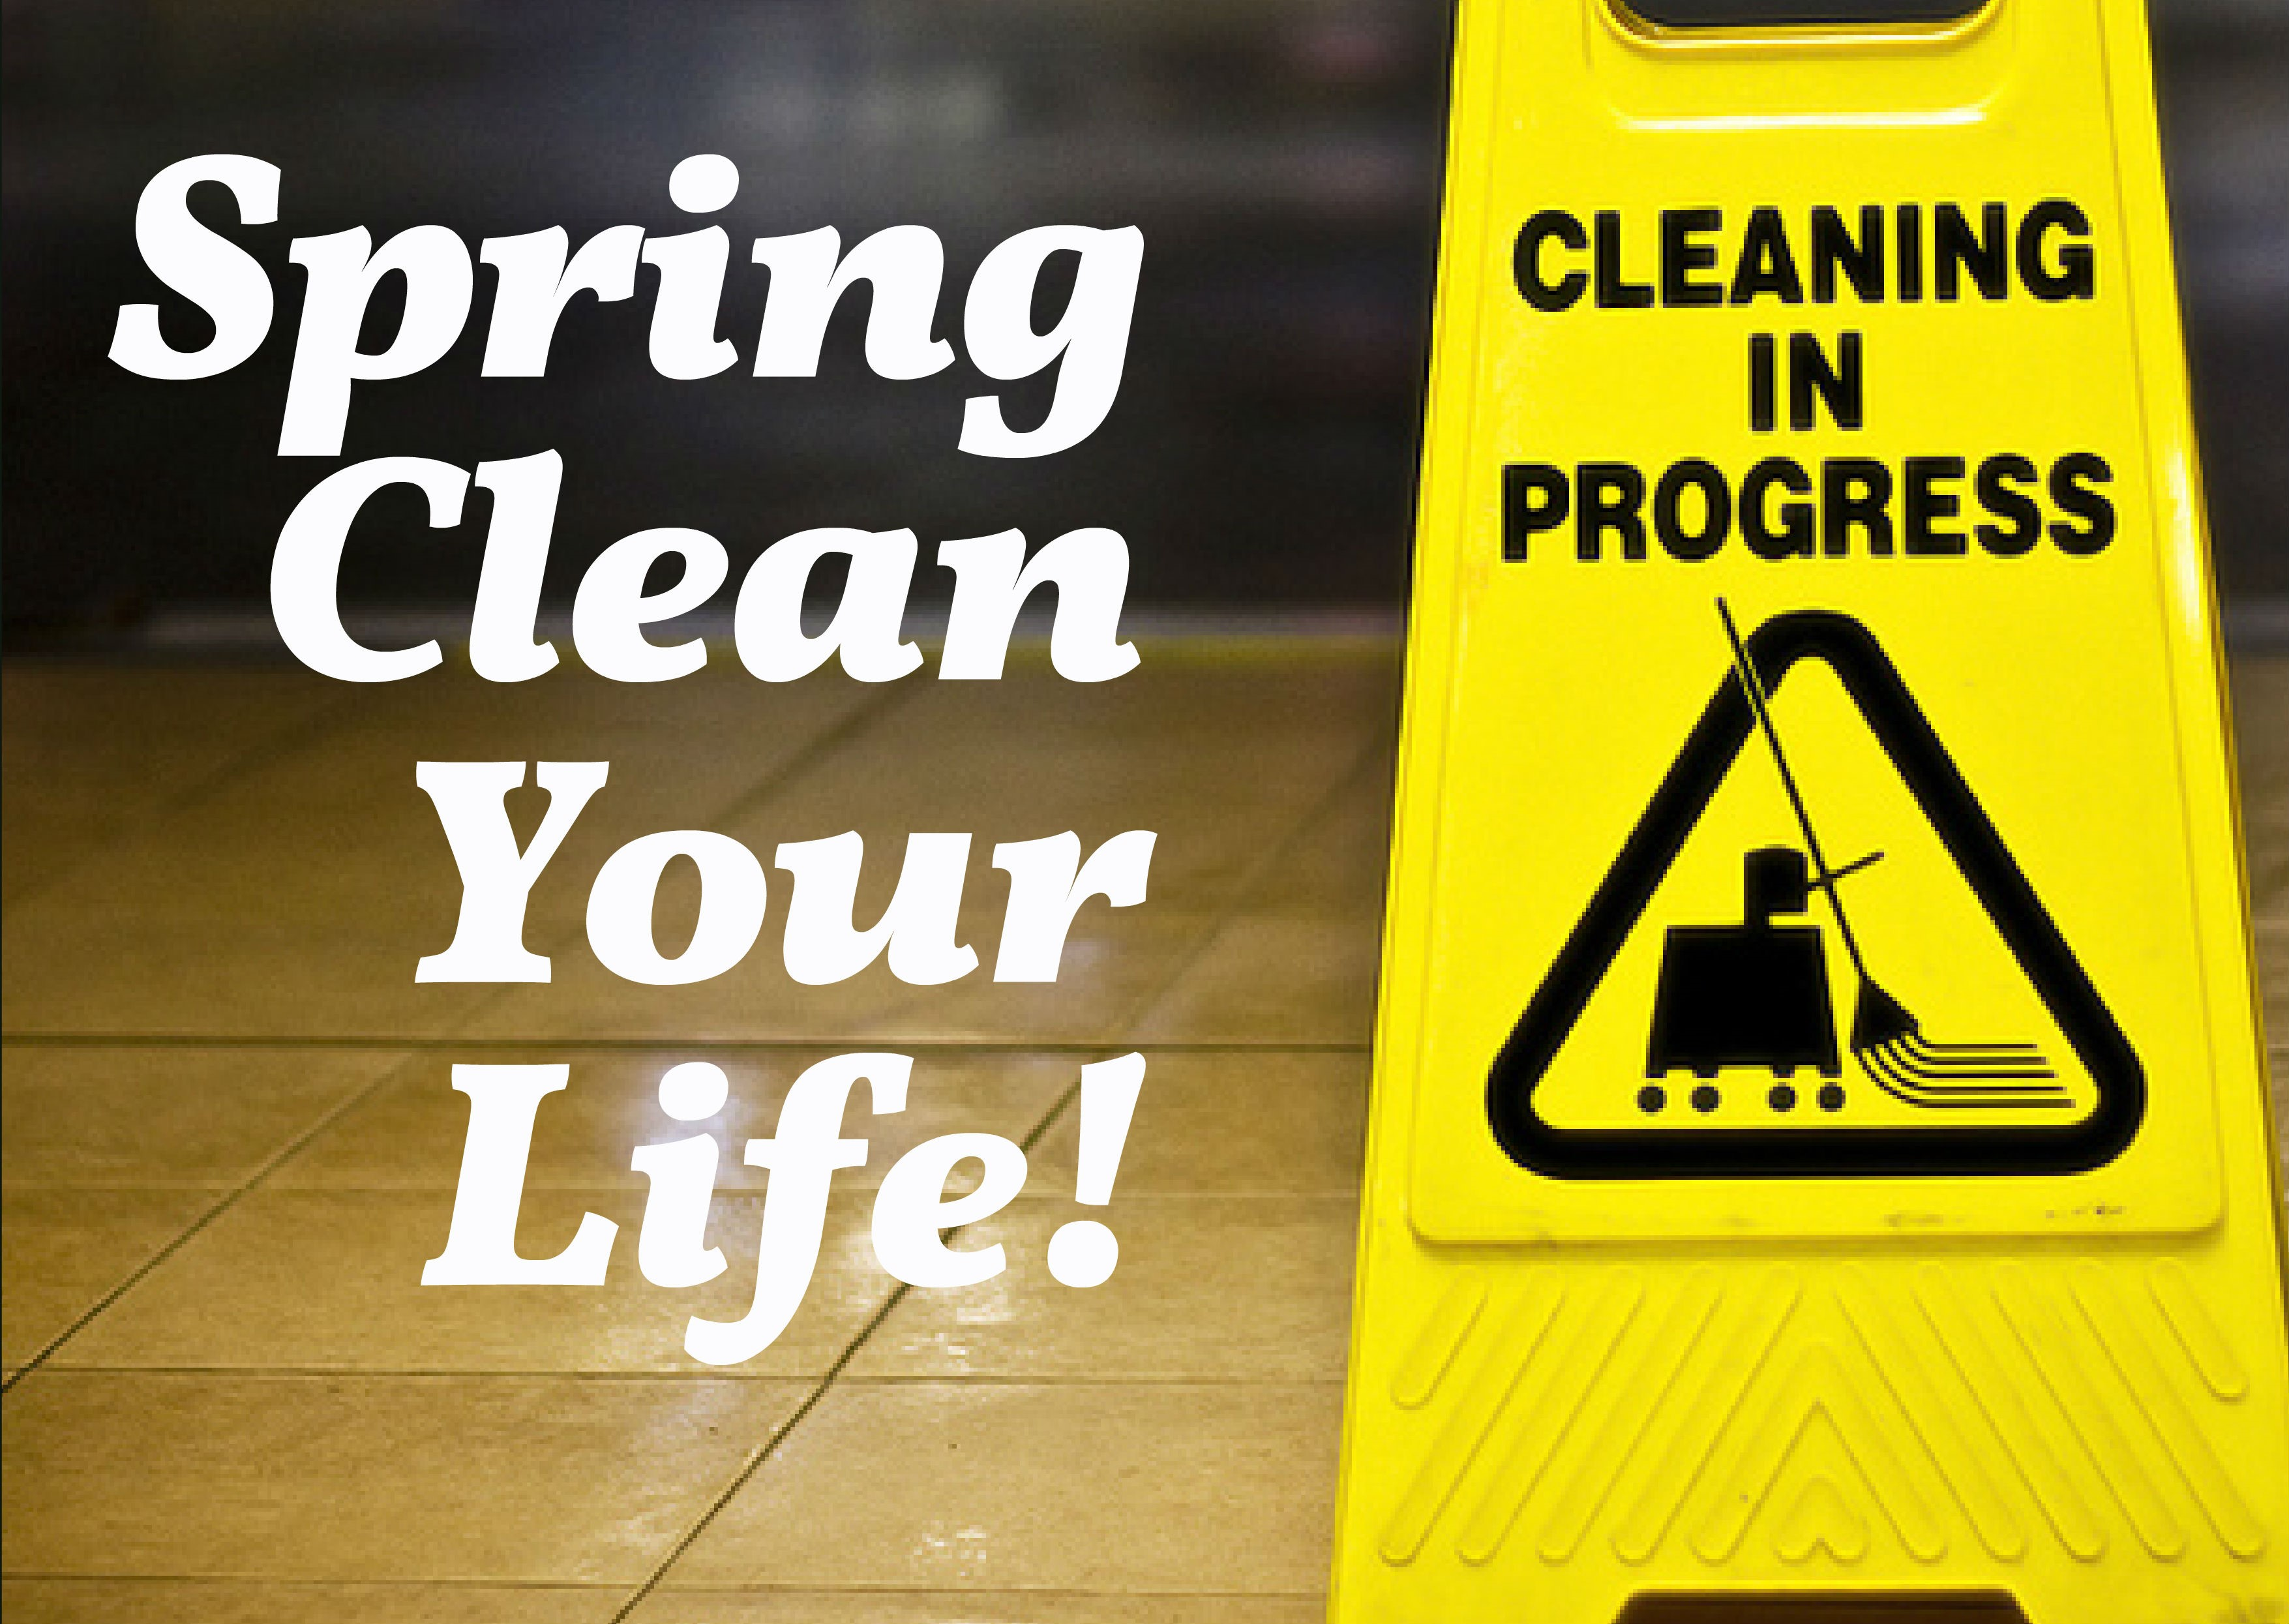 Spring clean your life and get rid of the rubbish